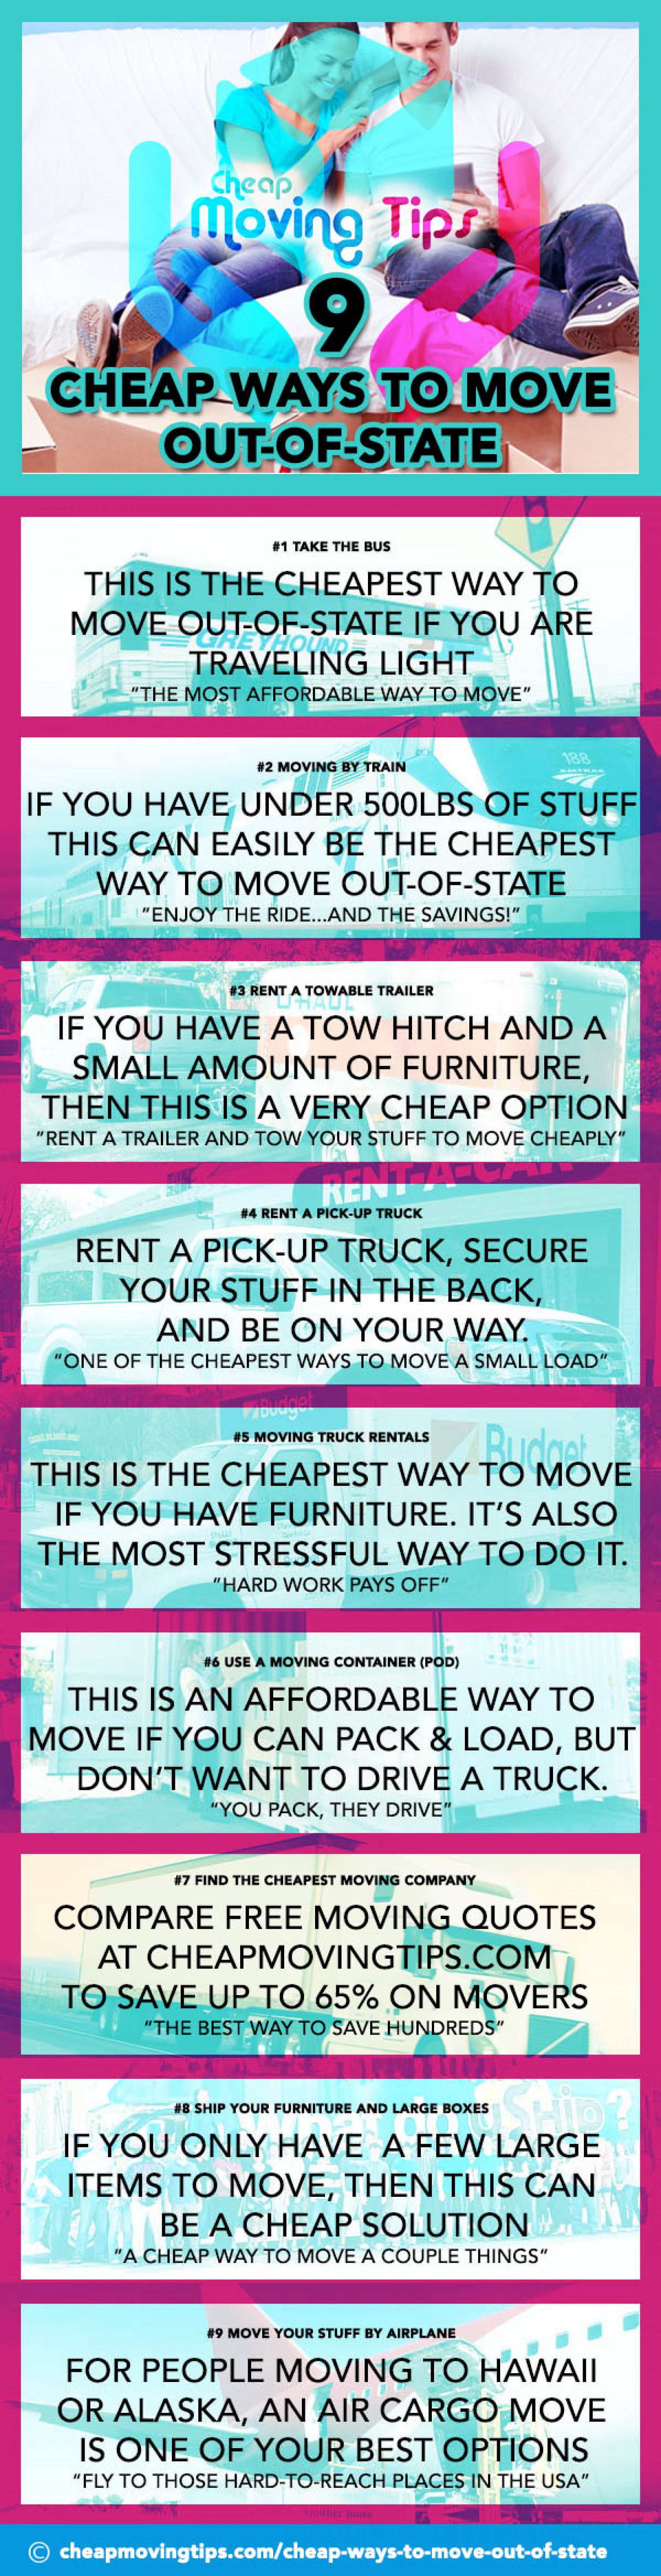 9 Cheap Ways To Move Out-of-State Infographic